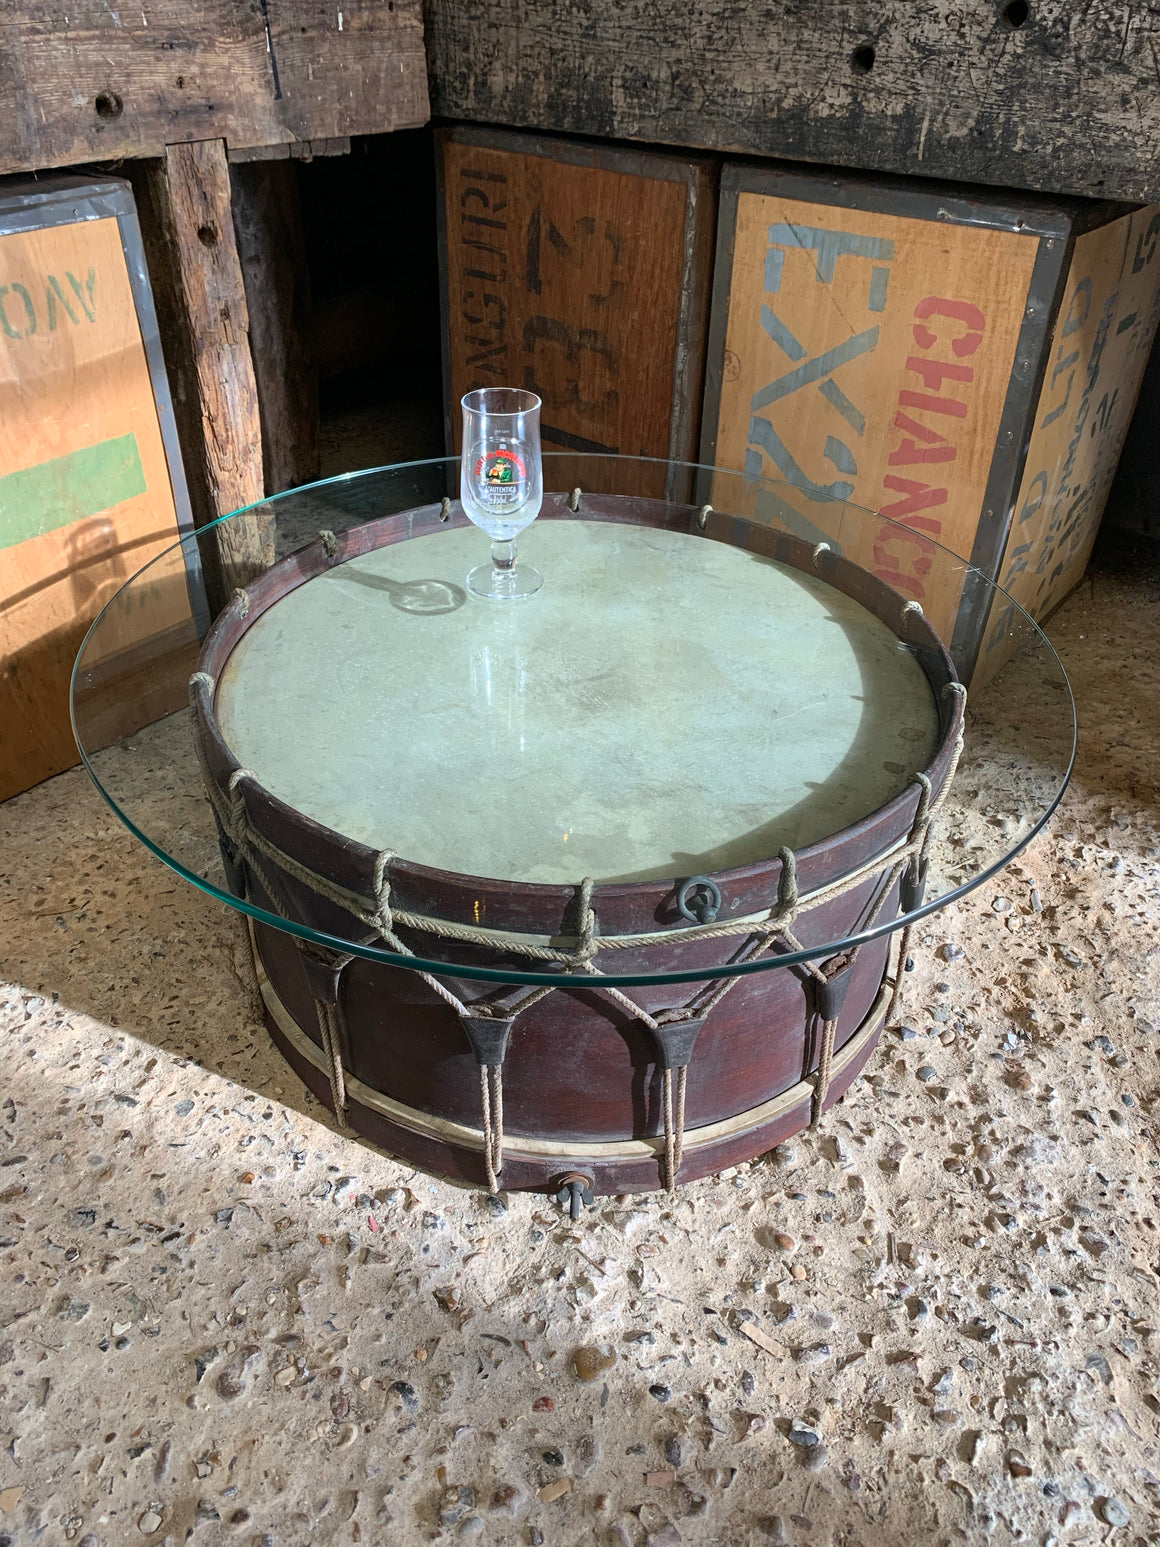 An antique wooden drum glass topped coffee table